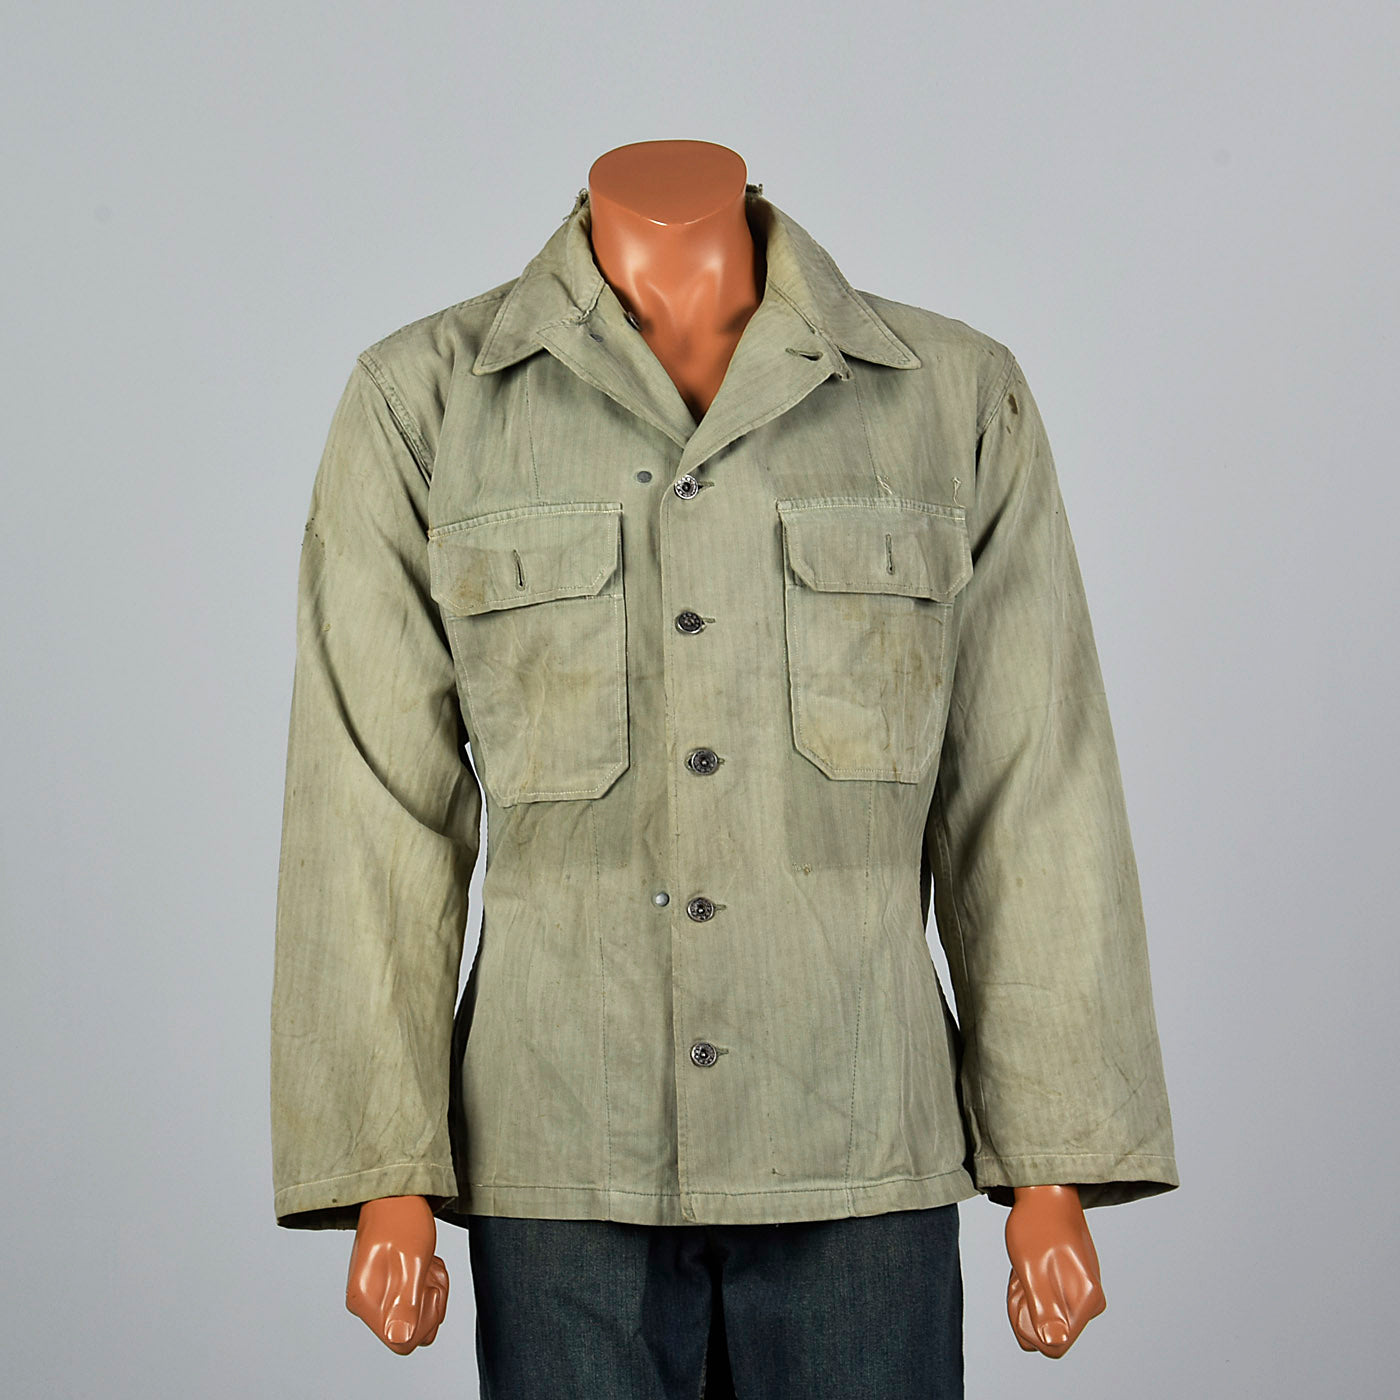 1940s WW2 US Army Shirt